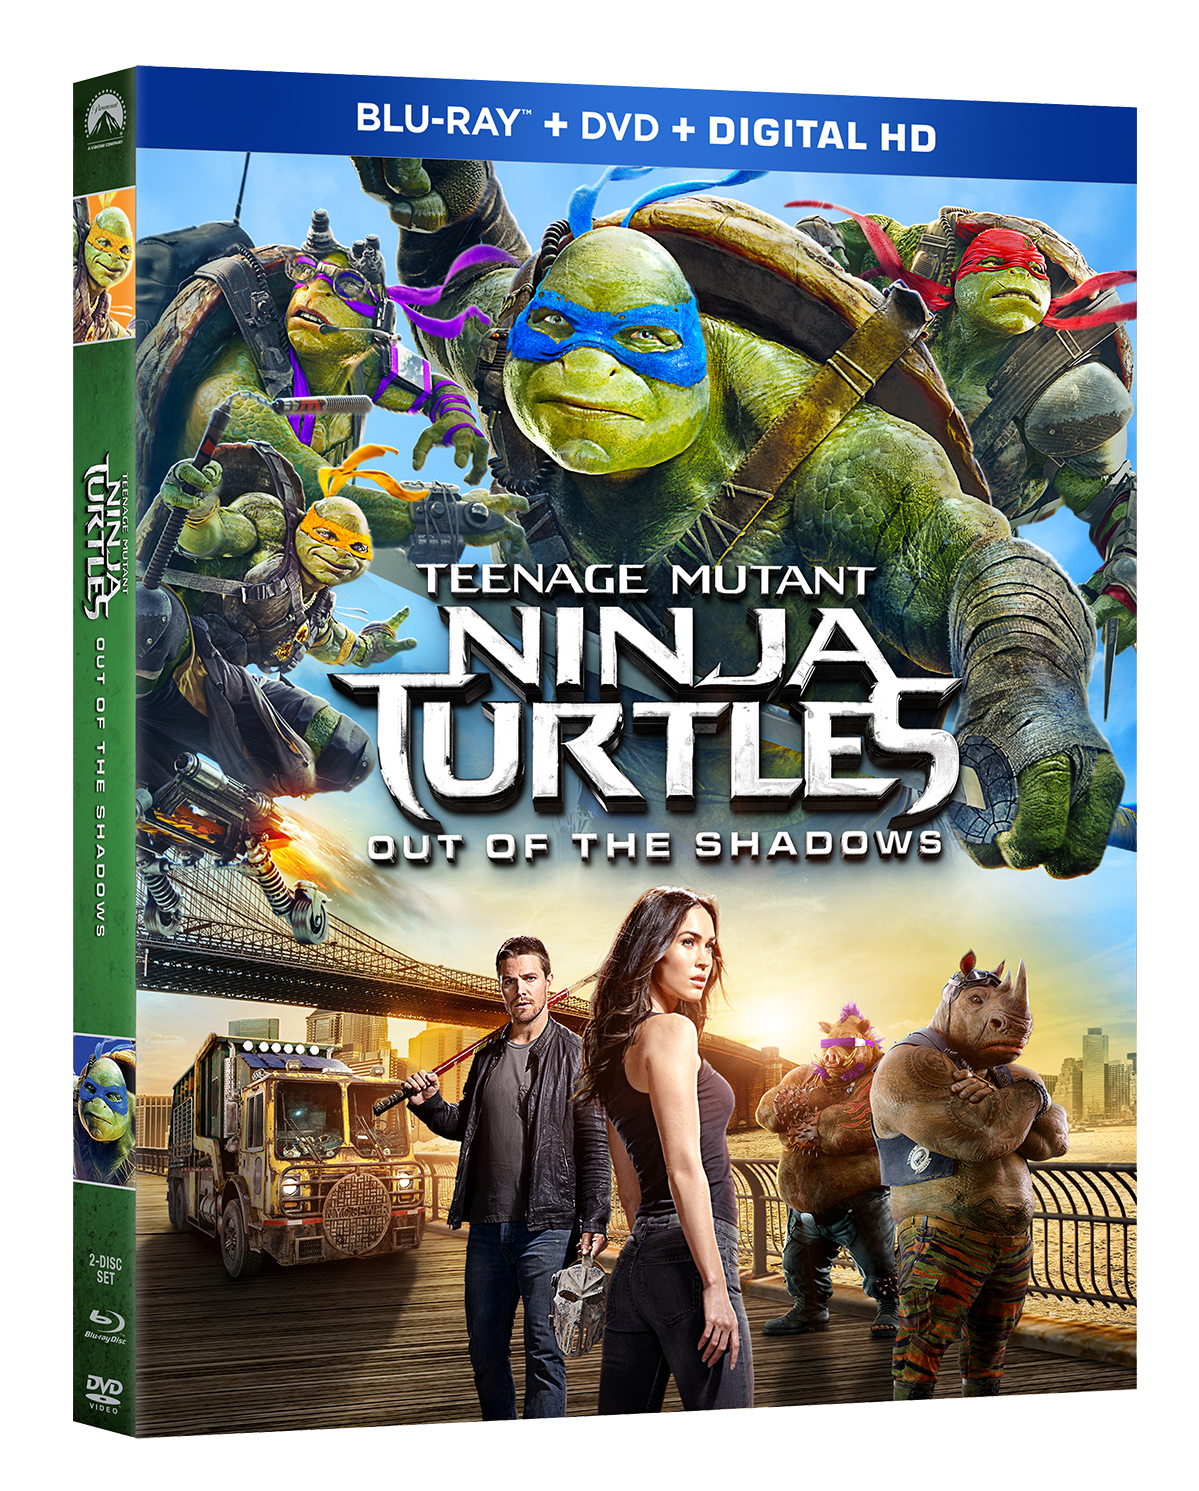 ninja turtles 2 torrent